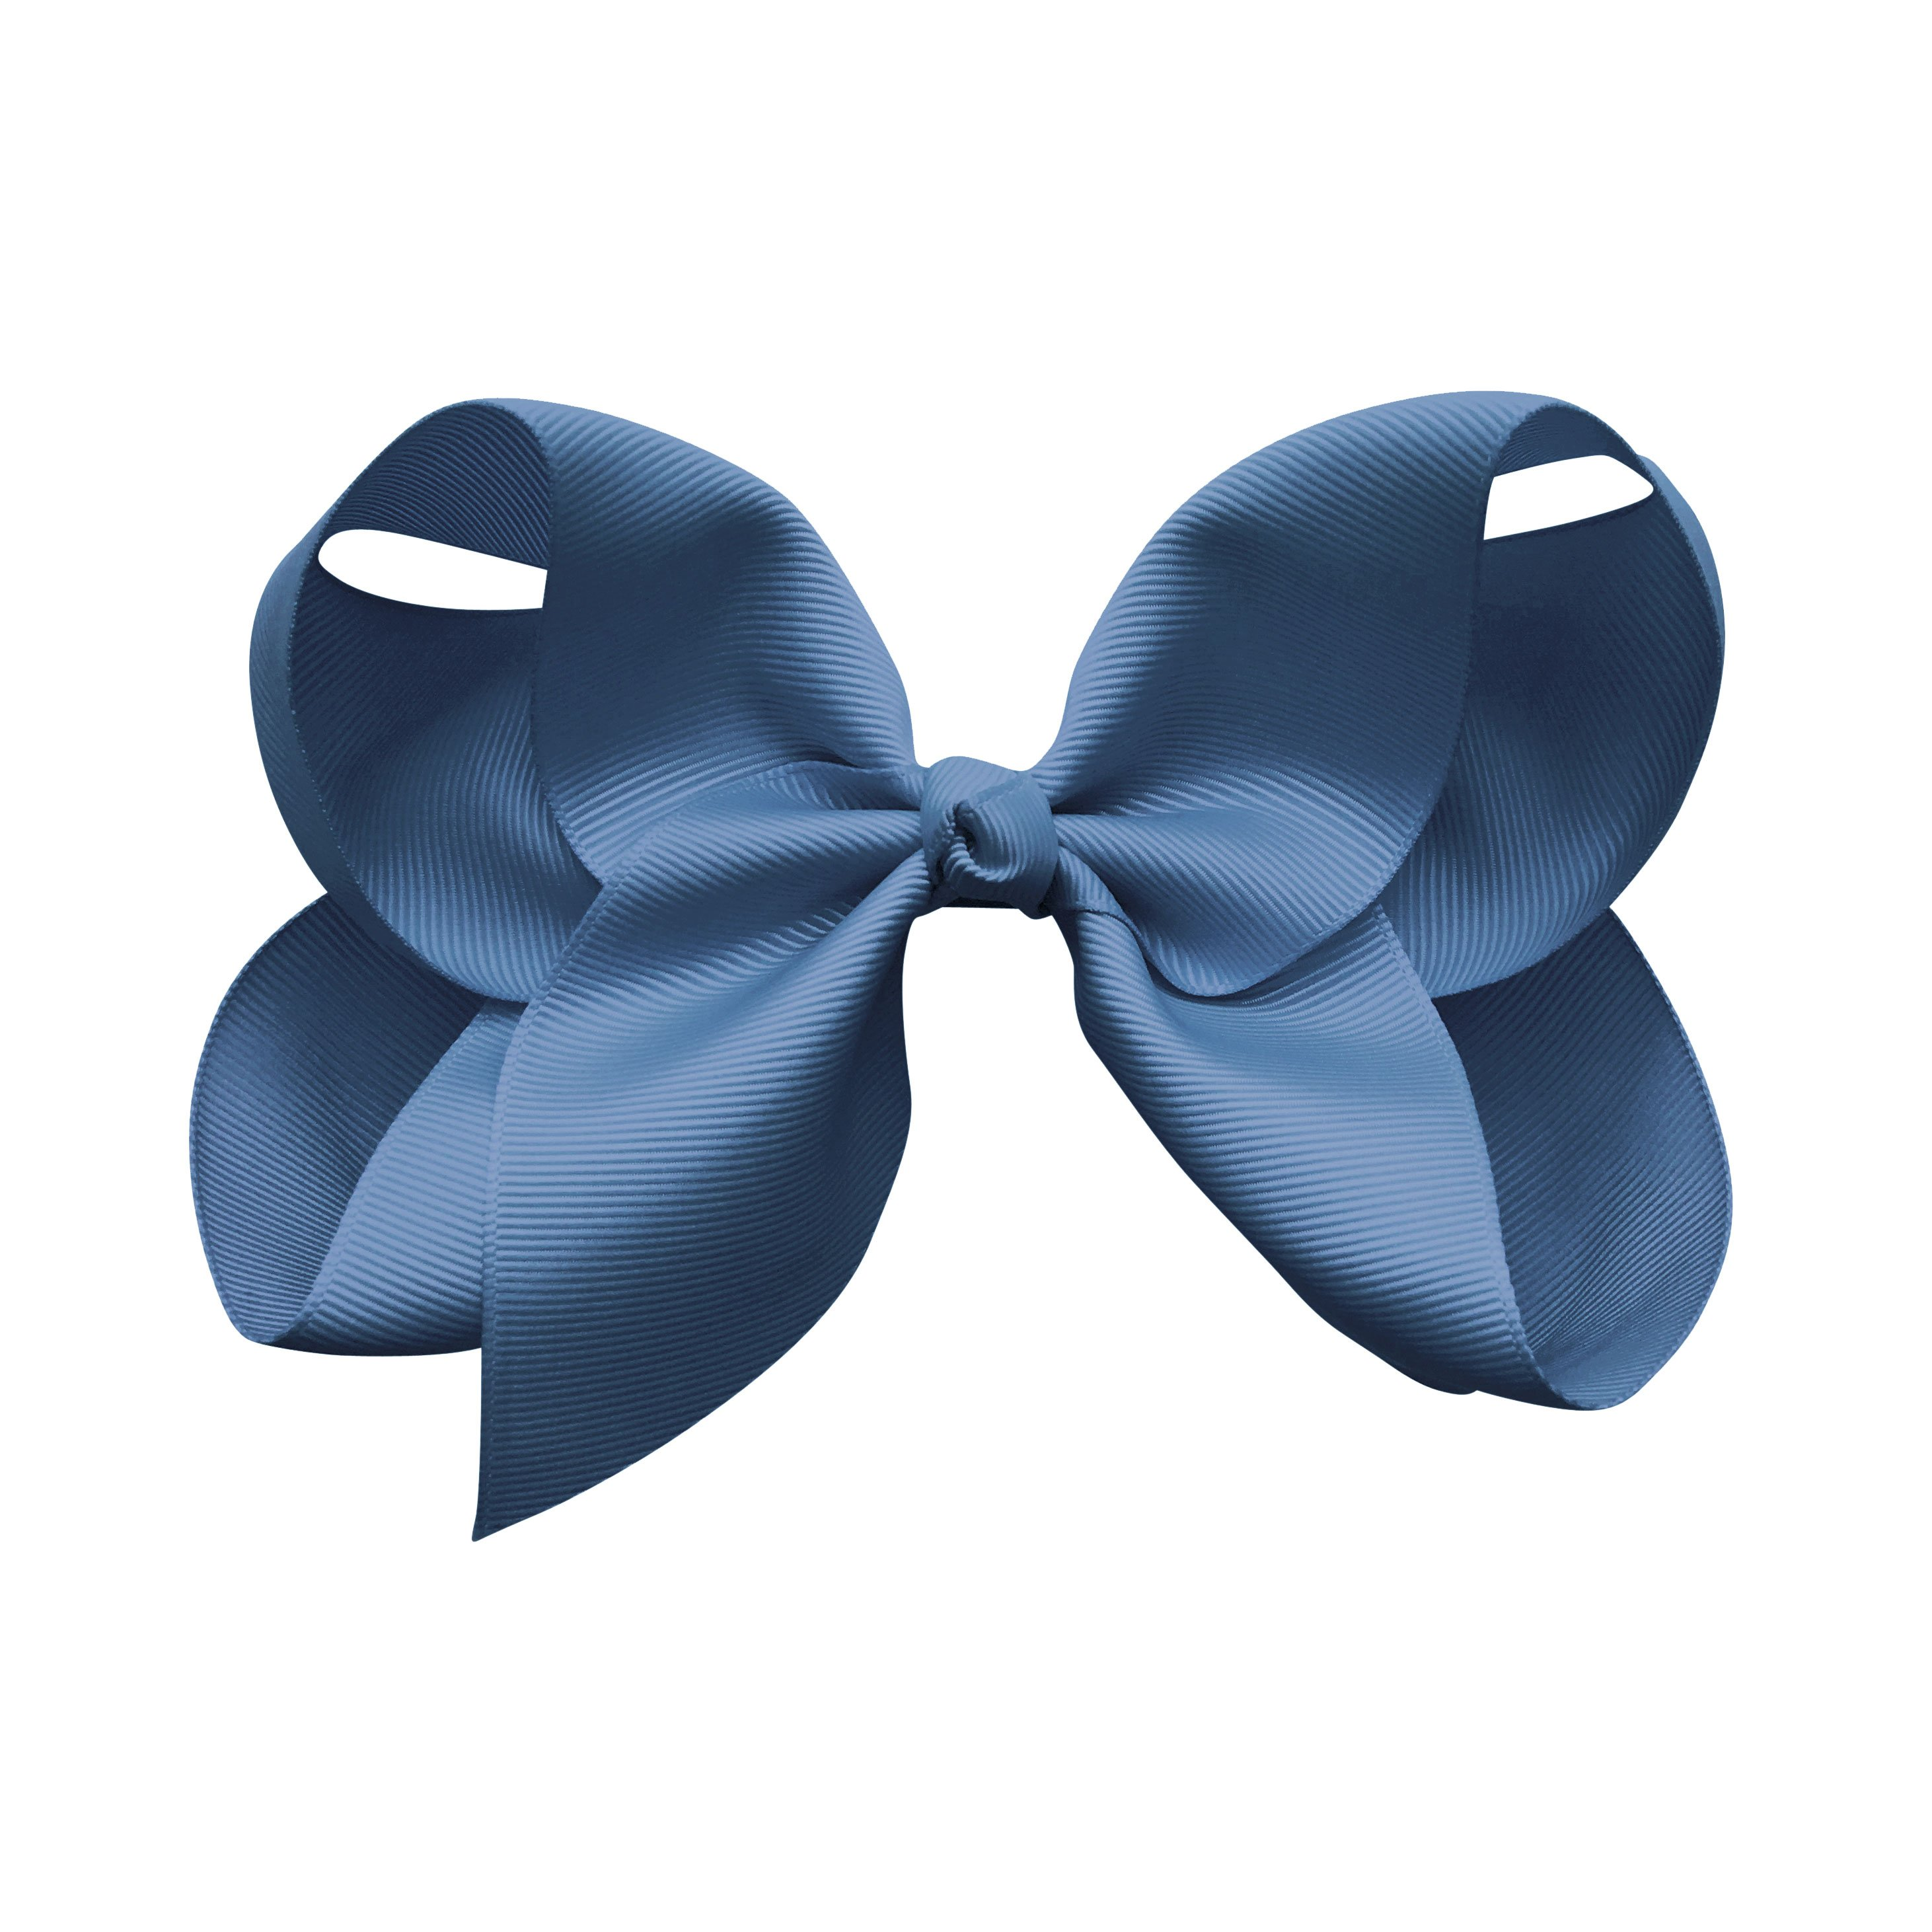 Image of Jumbo Boutique Bow - alligator clip - smoke blue